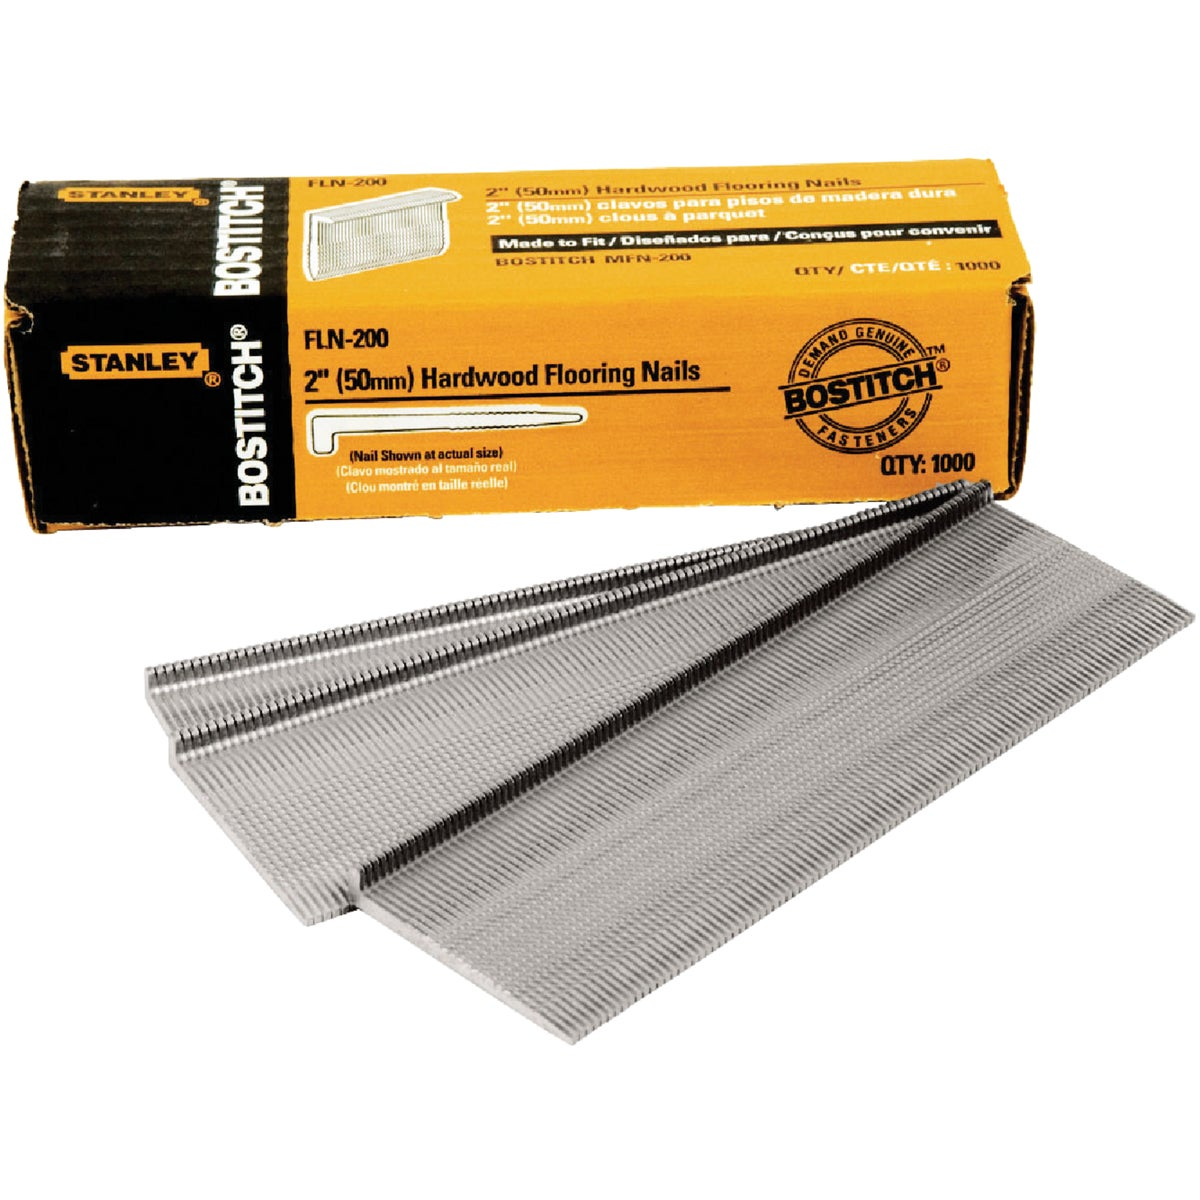 "2"" HARDWOOD FLOOR CLEAT - FLN-200 by Stanley Bostitch"